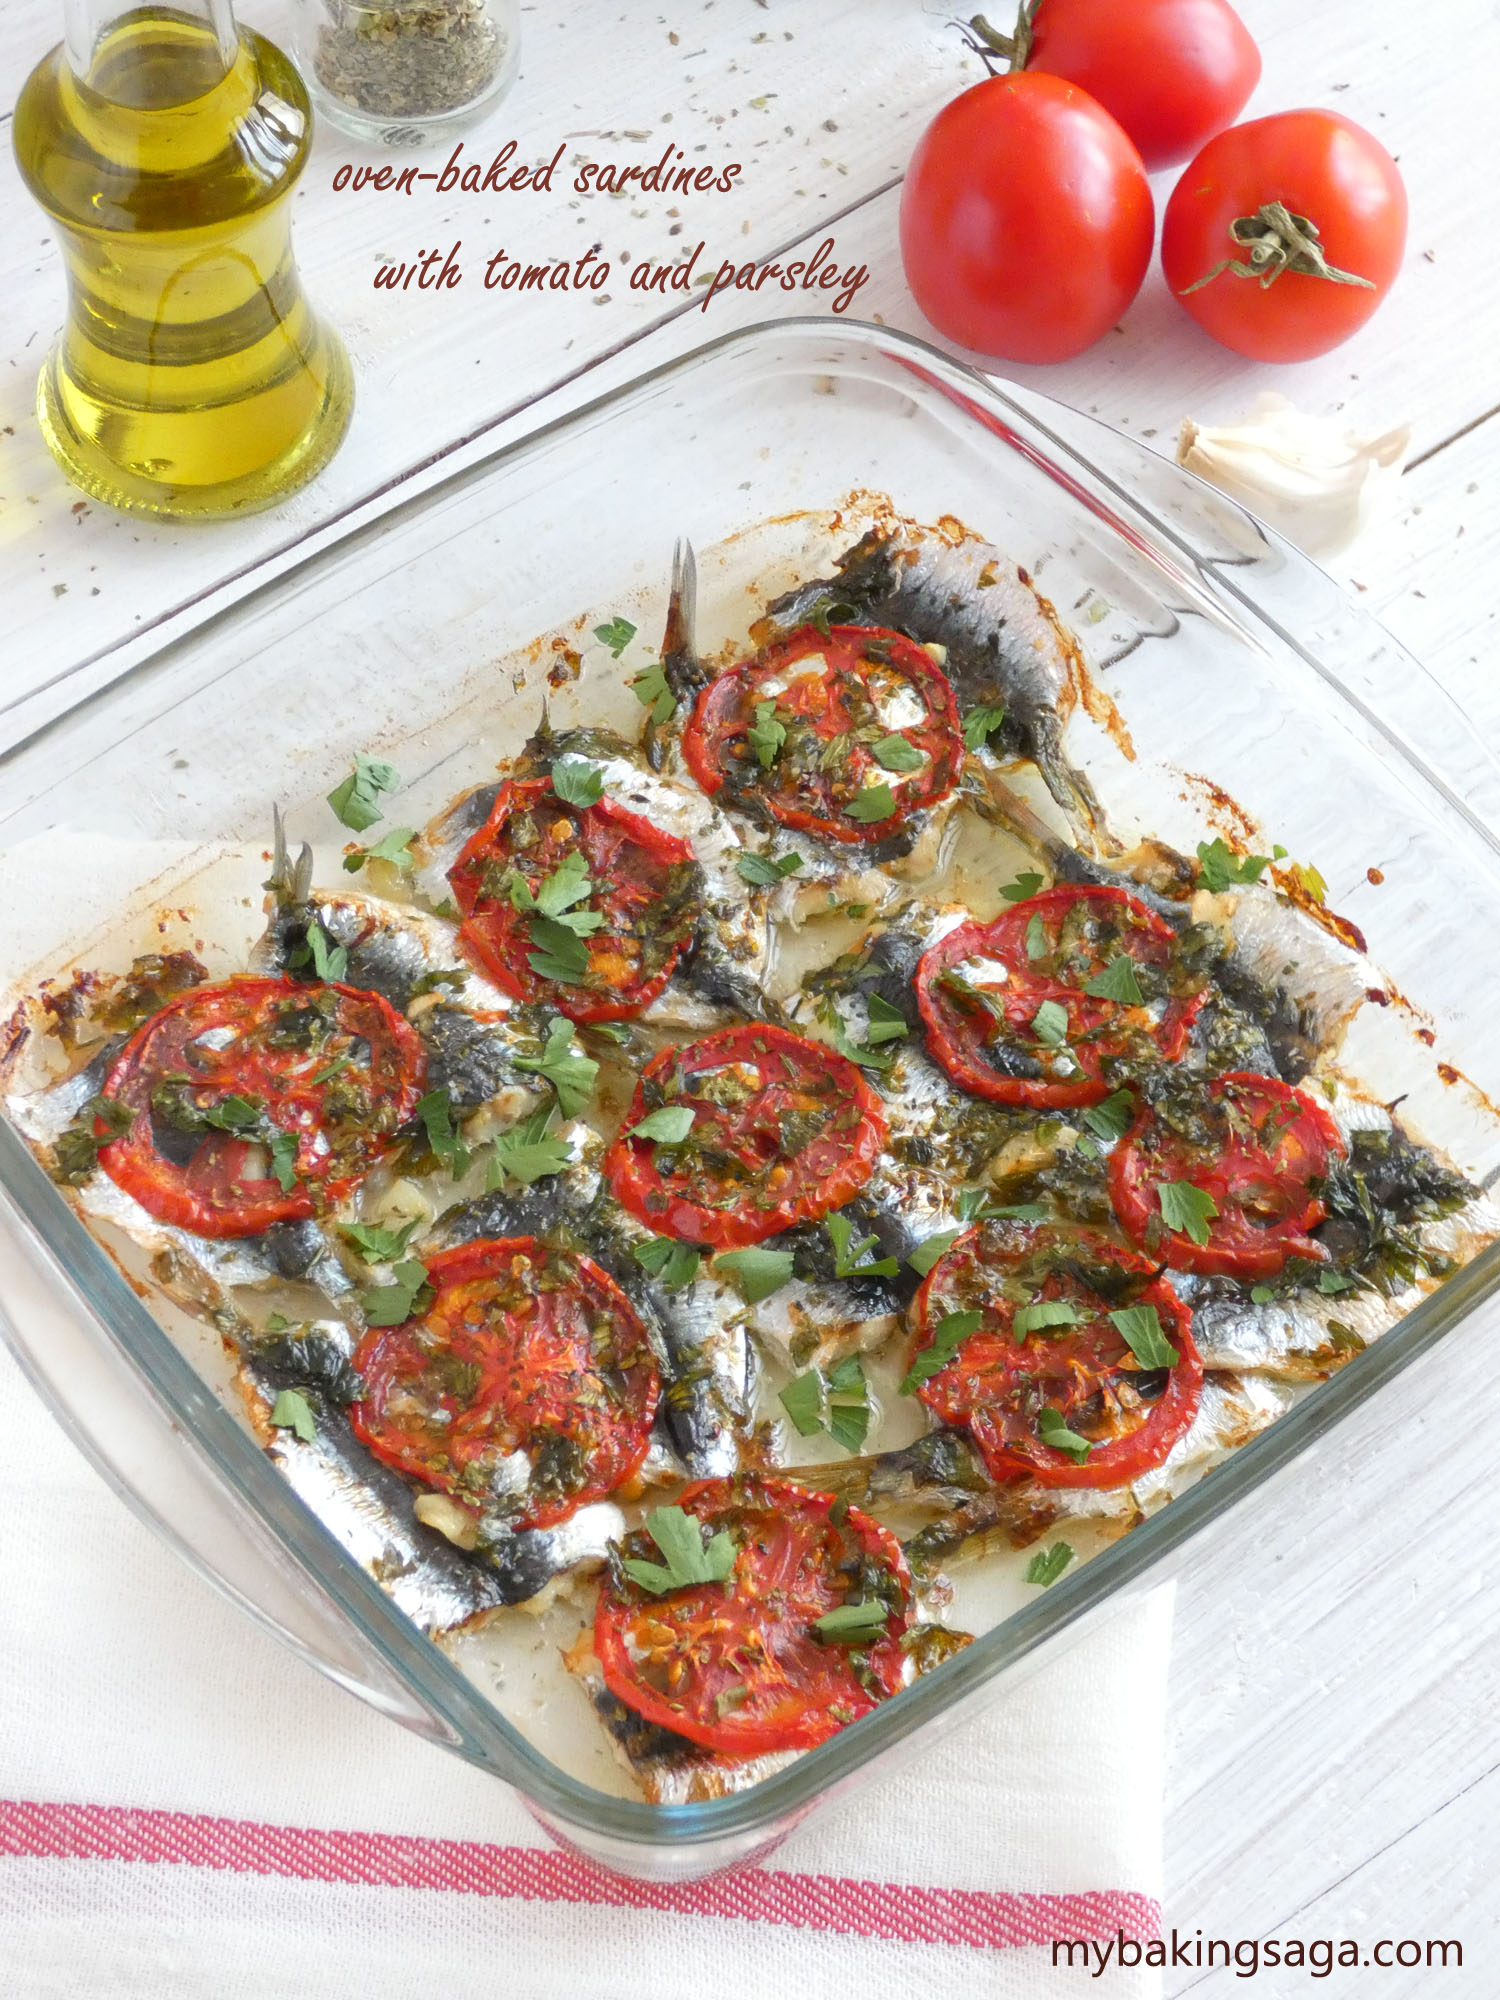 how to cook sardines in oven